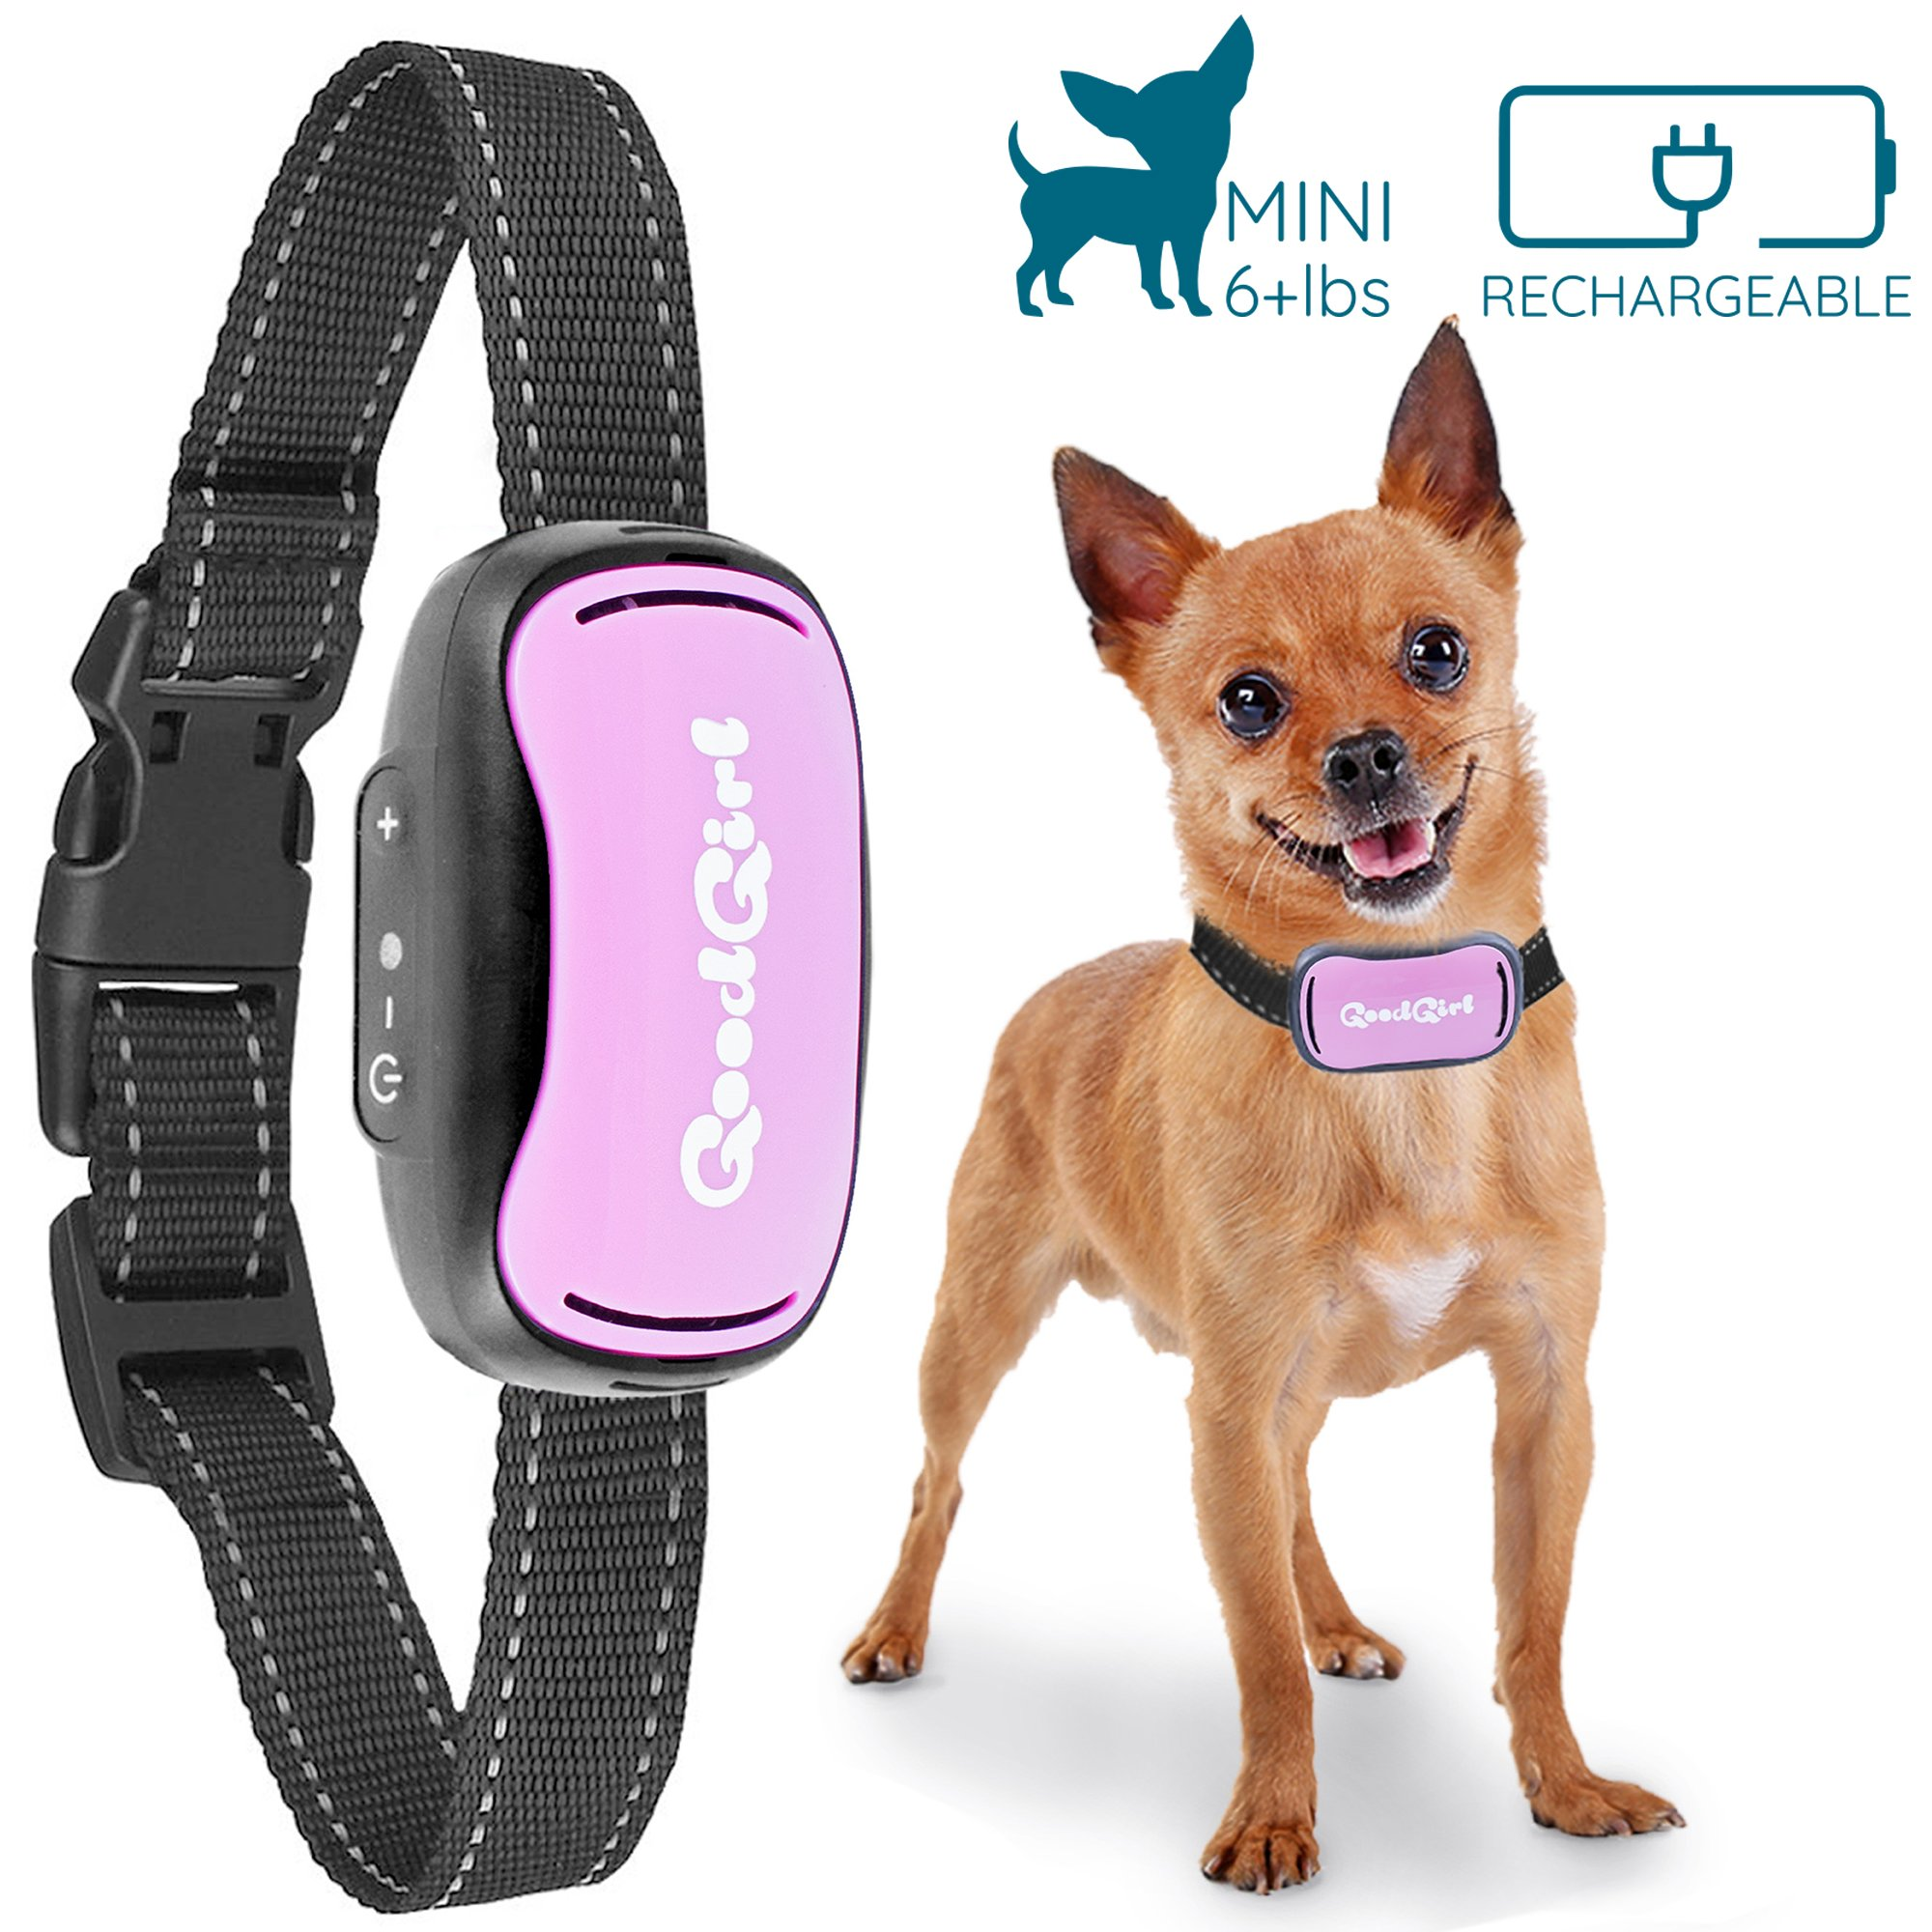 GoodBoy Small Rechargeable Dog Bark Collar for Tiny to Medium Dogs Waterproof and Vibrating Anti Bark Training Device That is Smallest & Most Safe On Amazon - No Shock No Spiky Prongs! (6+ lbs) by GoodBoy (Image #1)